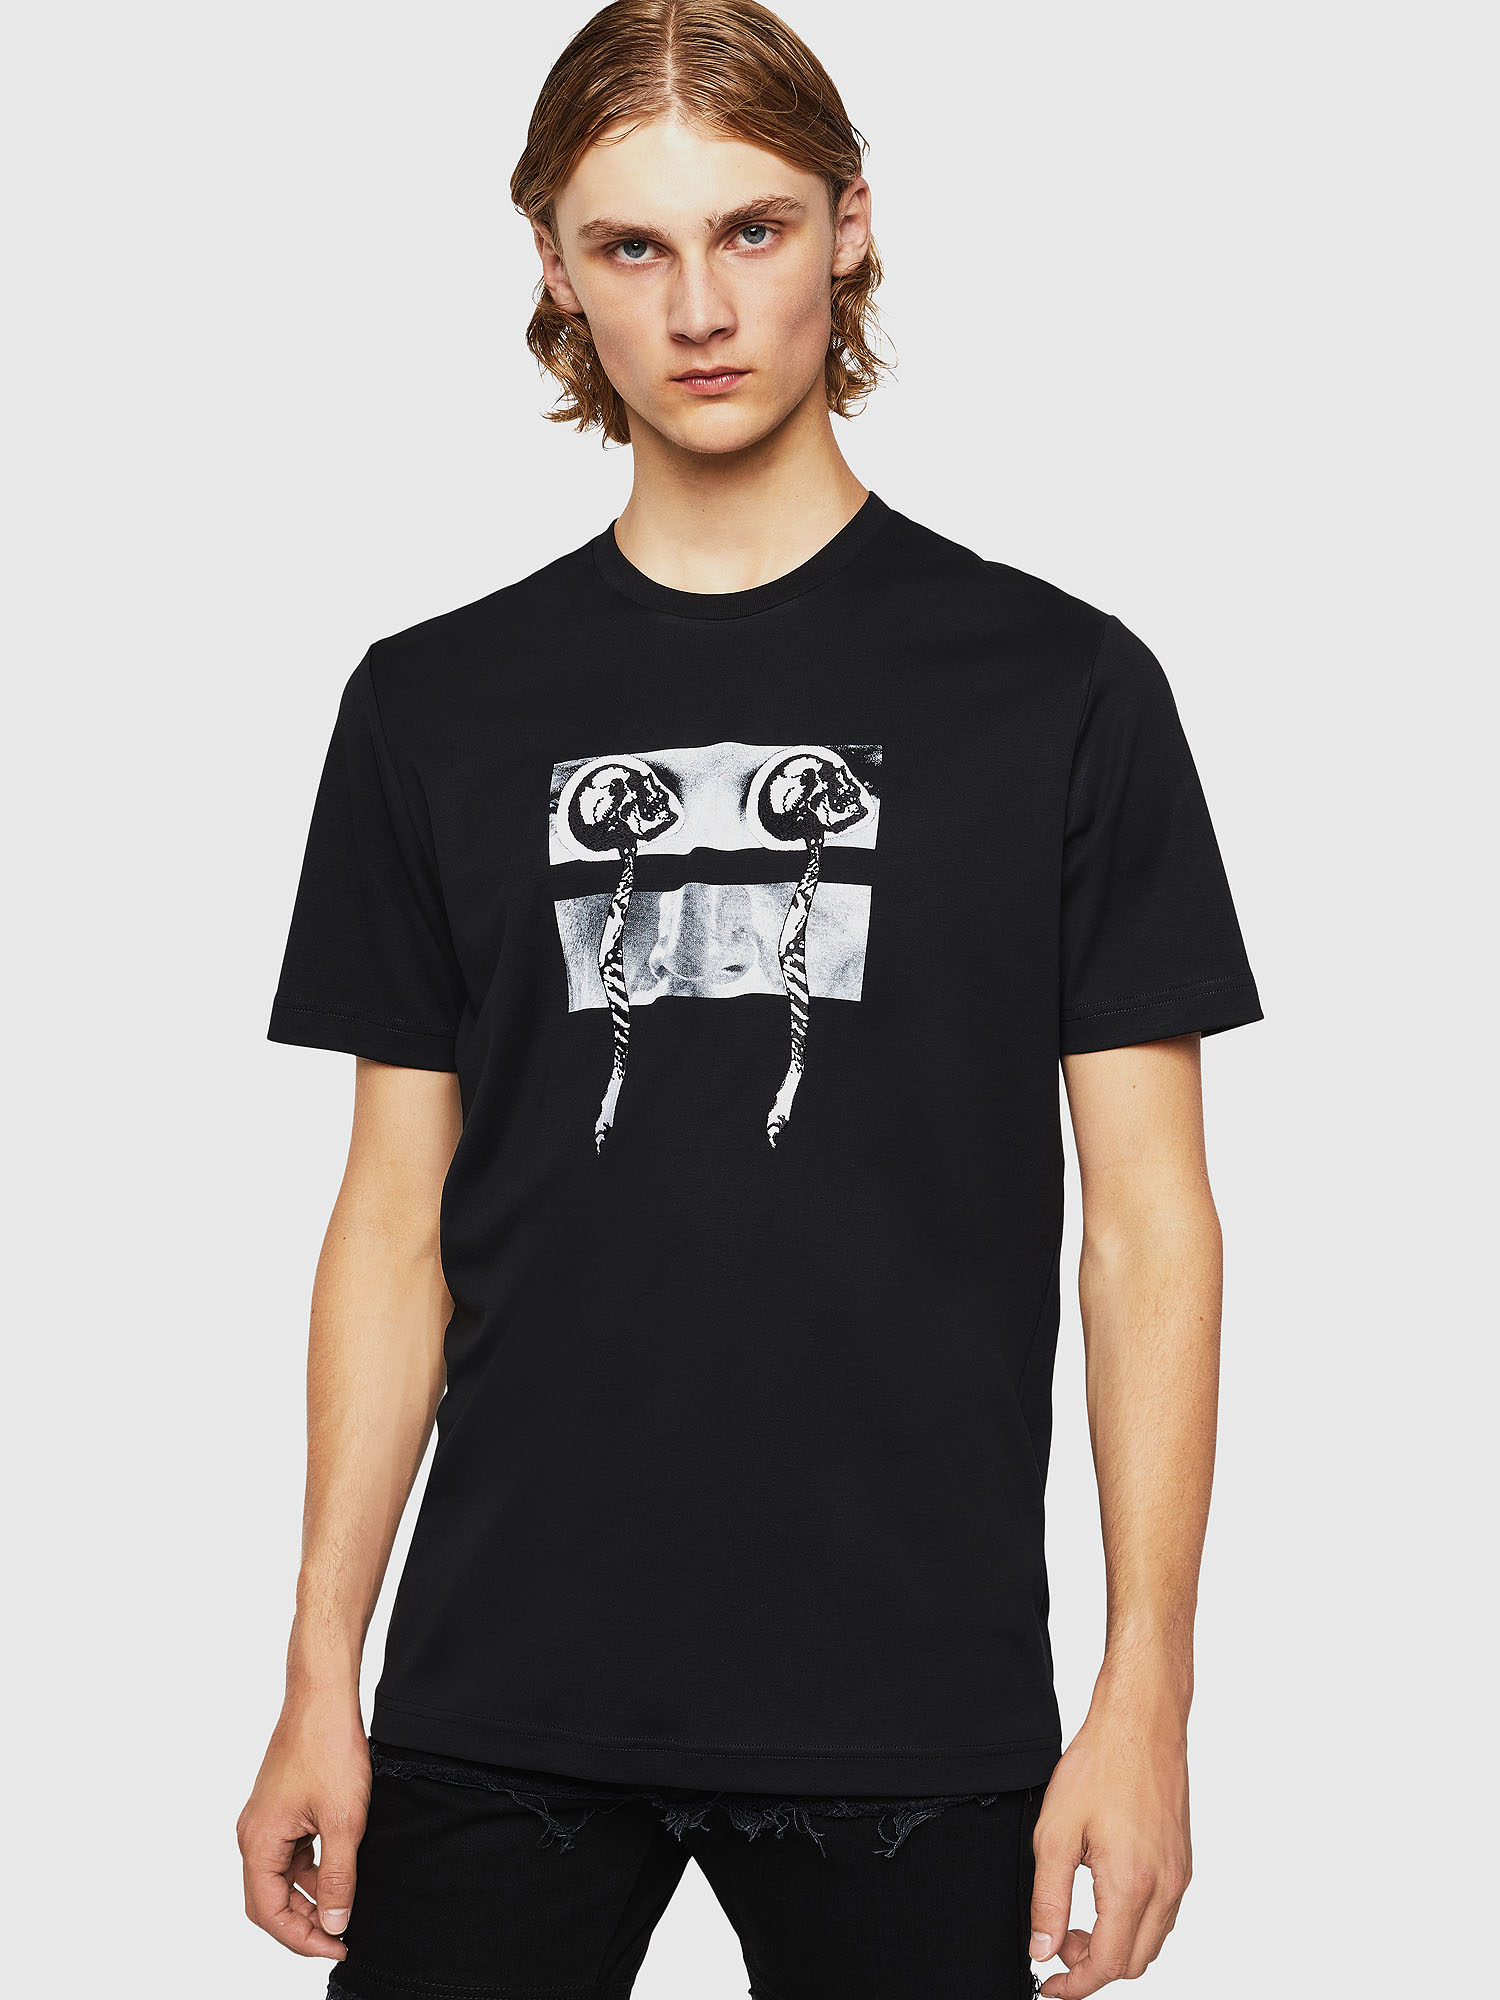 Diesel - TY-X1,  - T-Shirts - Image 1